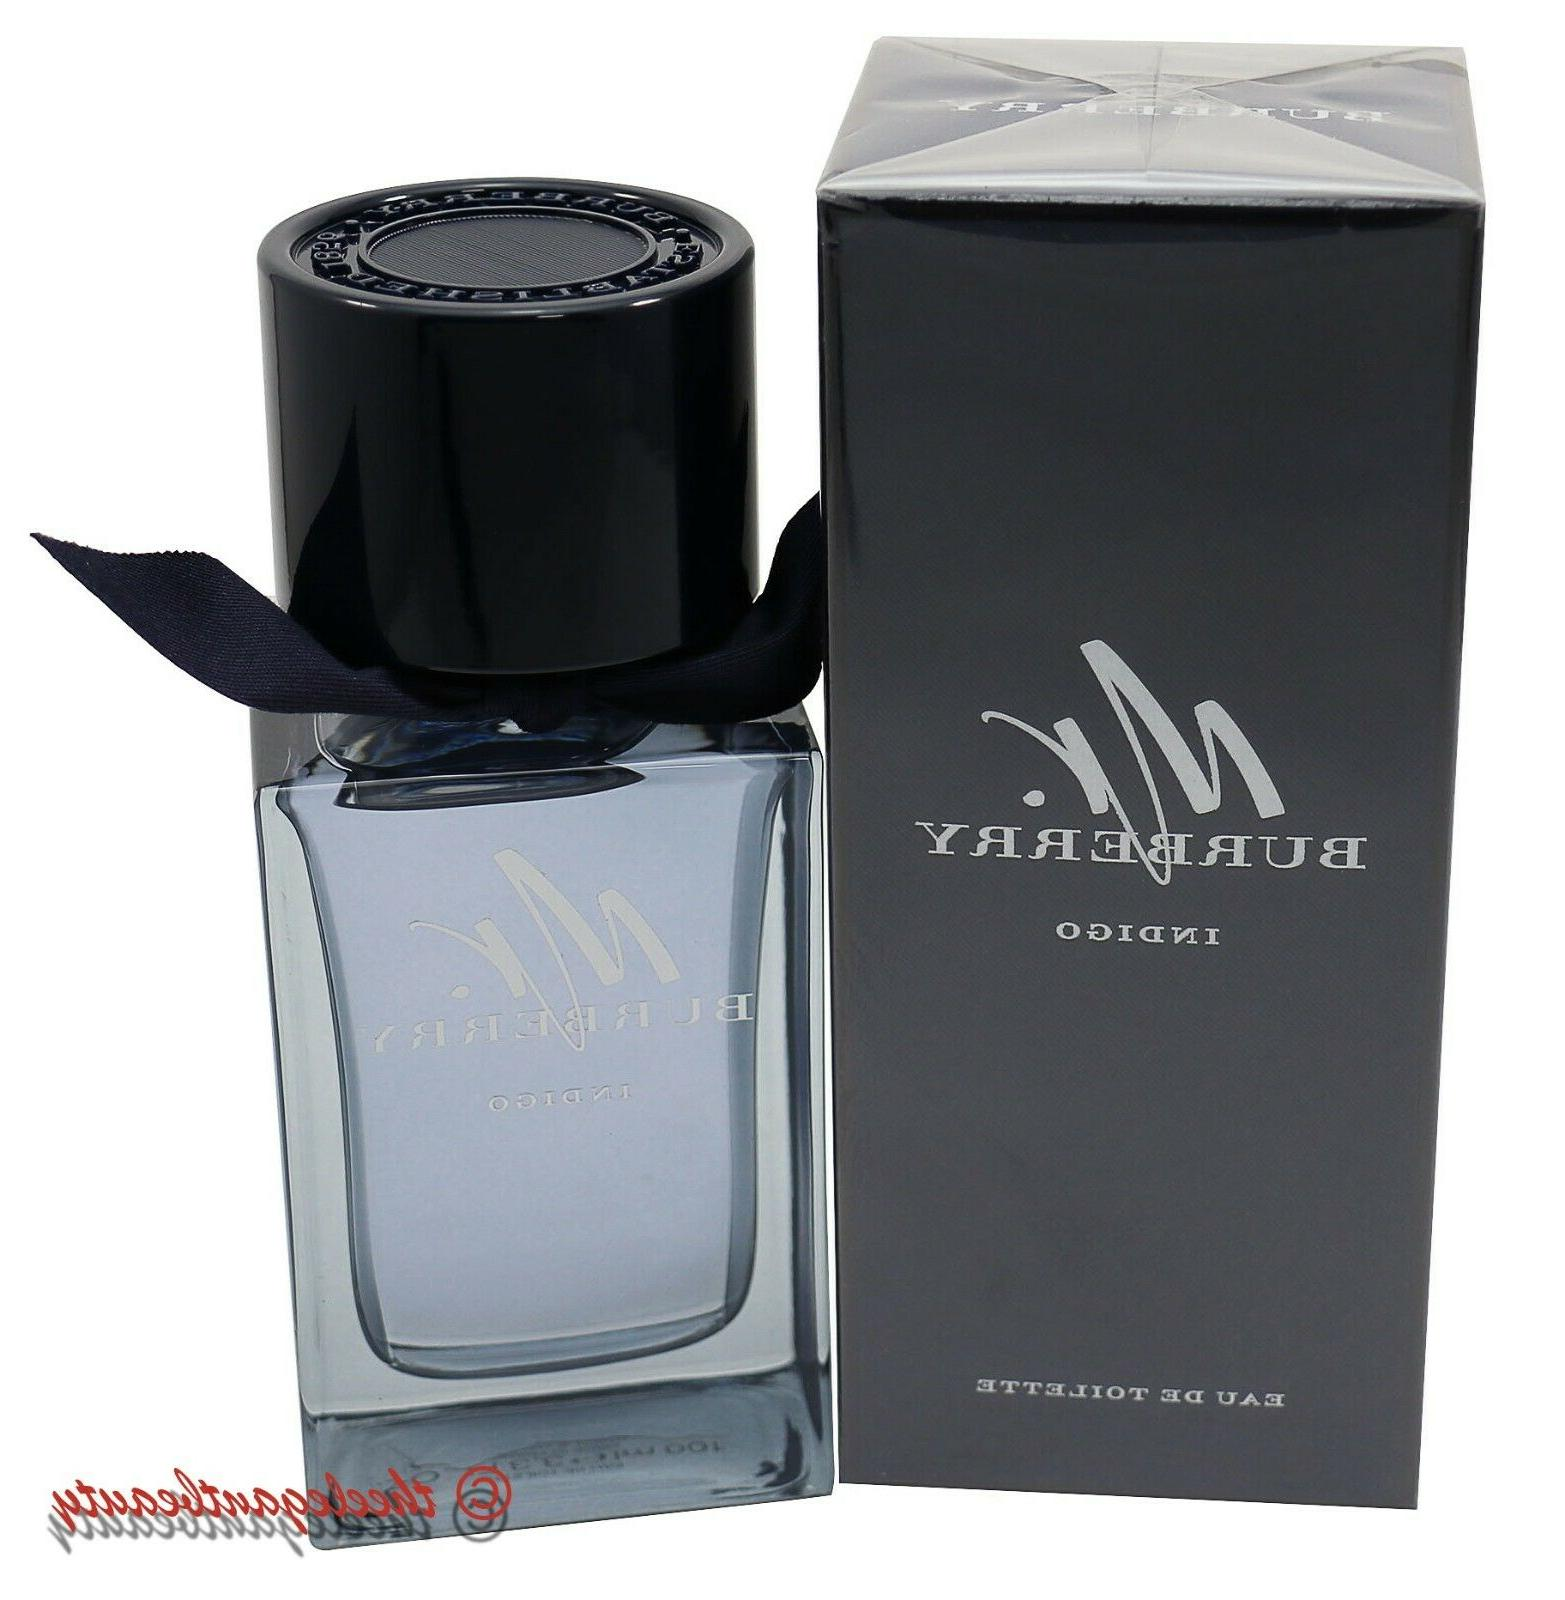 Burberry Indigo EDT Eau De Toilette Spray 100ml/3.3oz Mens C